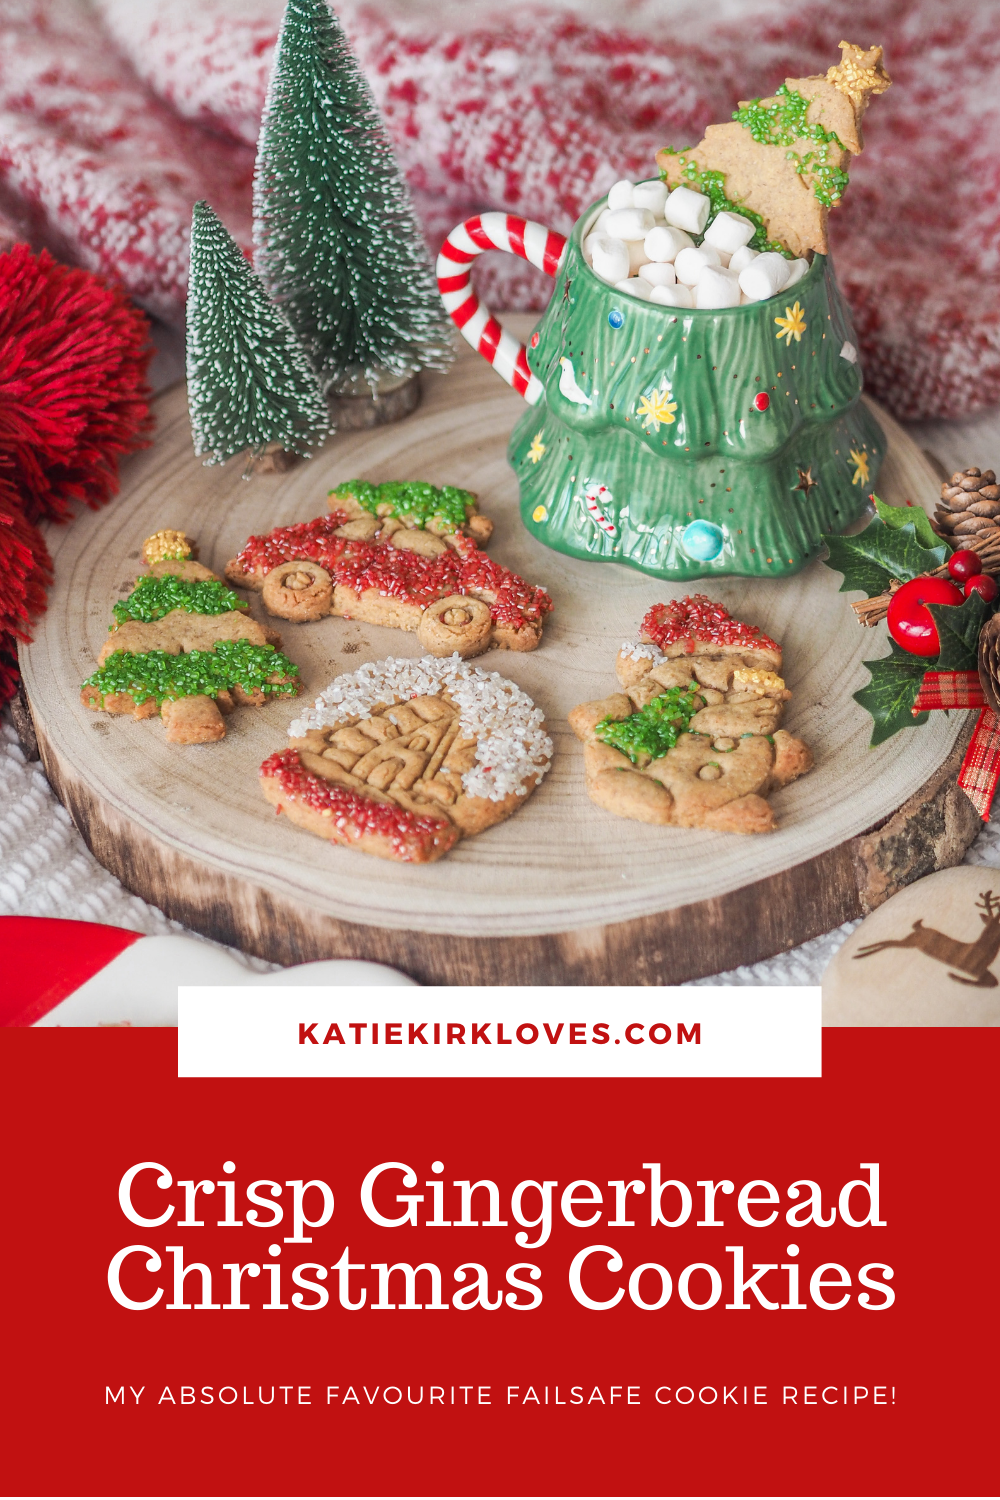 Pin it! Crisp Gingerbread Christmas Cookies, Food Blogger, Katie Kirk Loves, UK Blogger, Christmas Recipe, Christmas Baking, Homemade Christmas Gifts, Home Baking, UK Baking Blog, UK Recipe, Christmas Cookies, Gingerbread Cookies